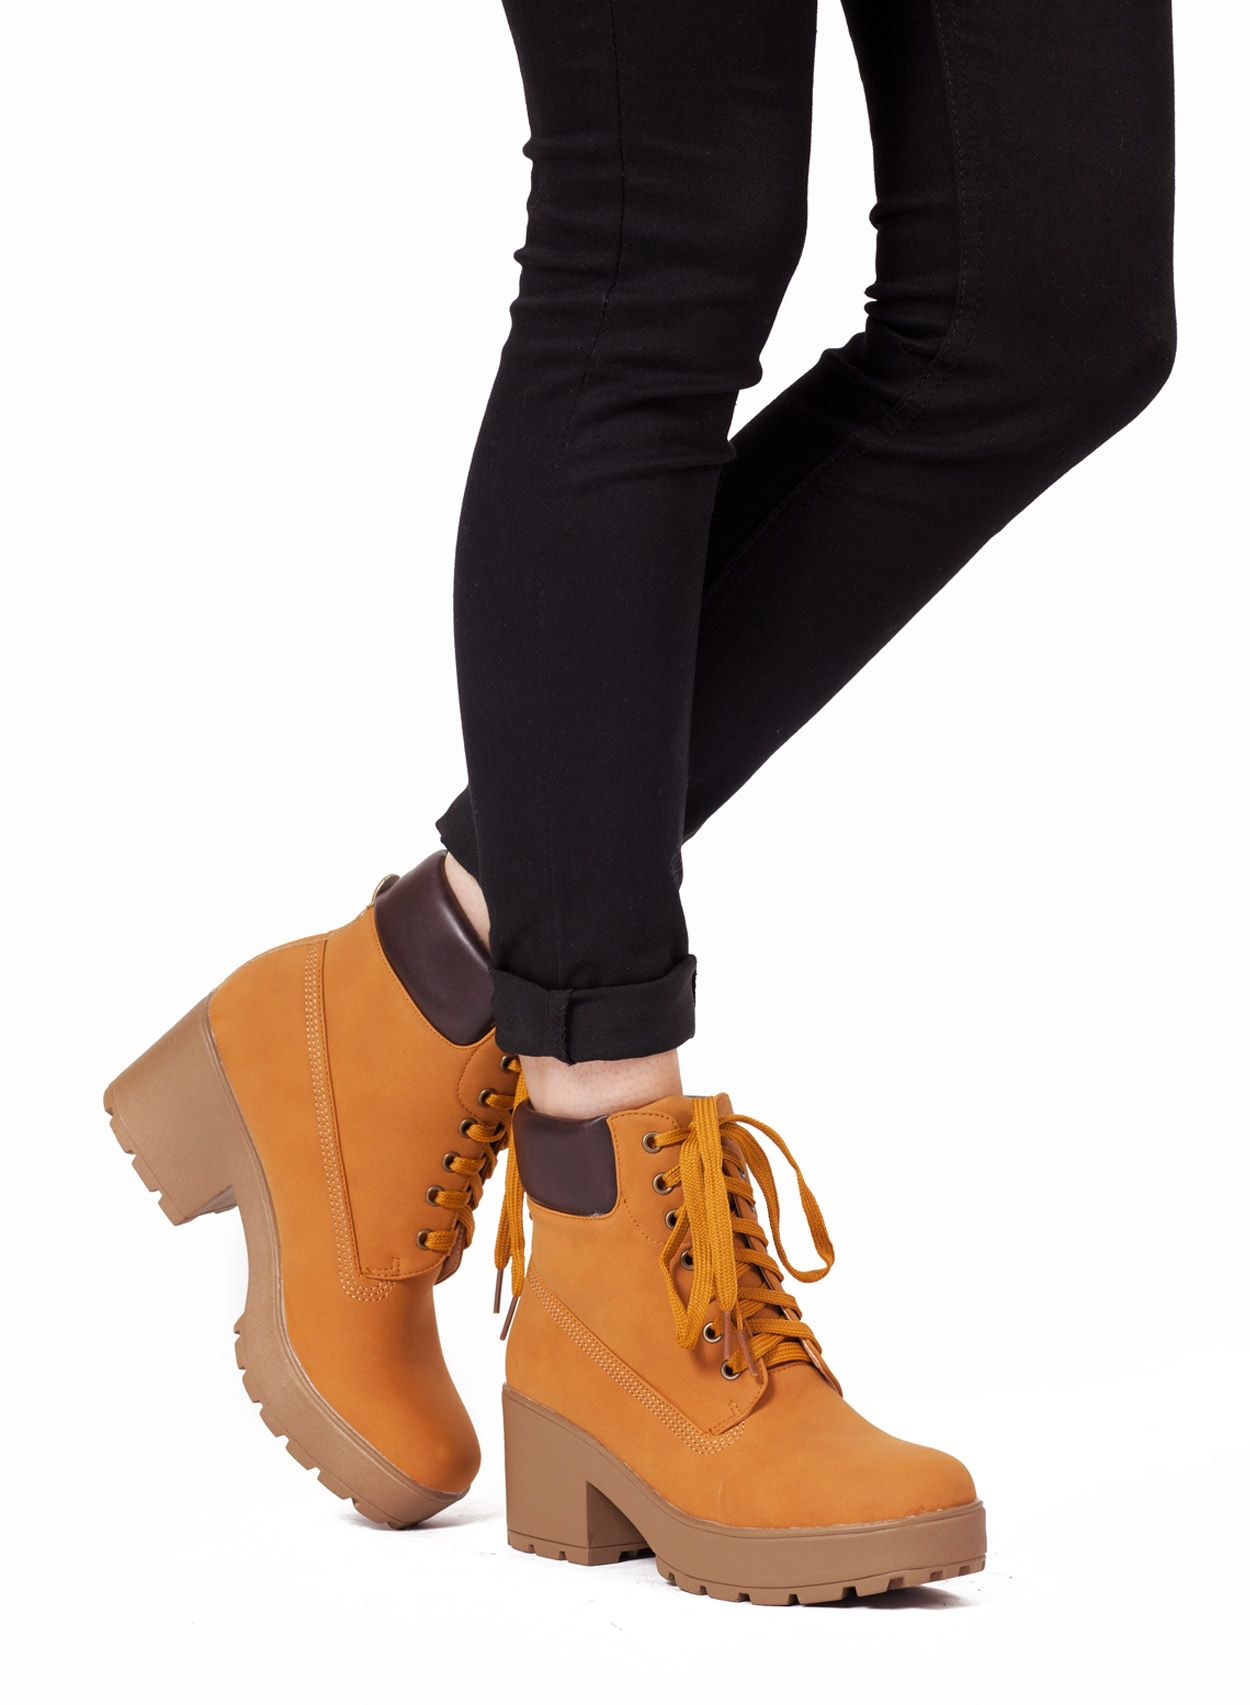 Knowles Honey Suede Boots